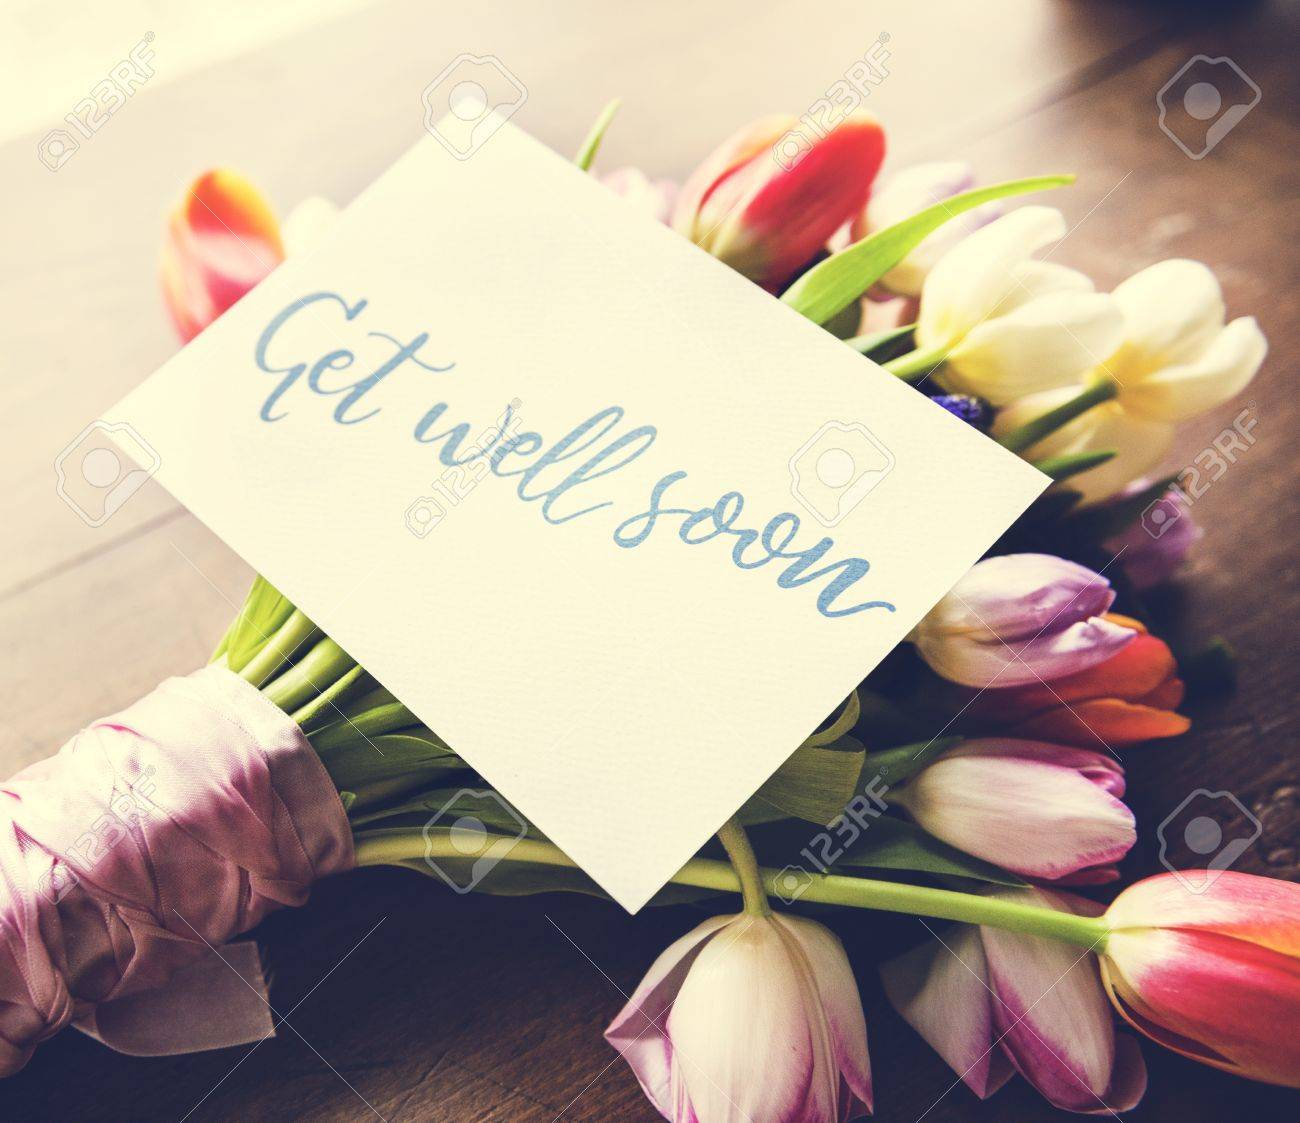 Tulips Flowers Bouquet With Get Well Soon Wishing Card Stock Photo Picture And Royalty Free Image Image 82261487